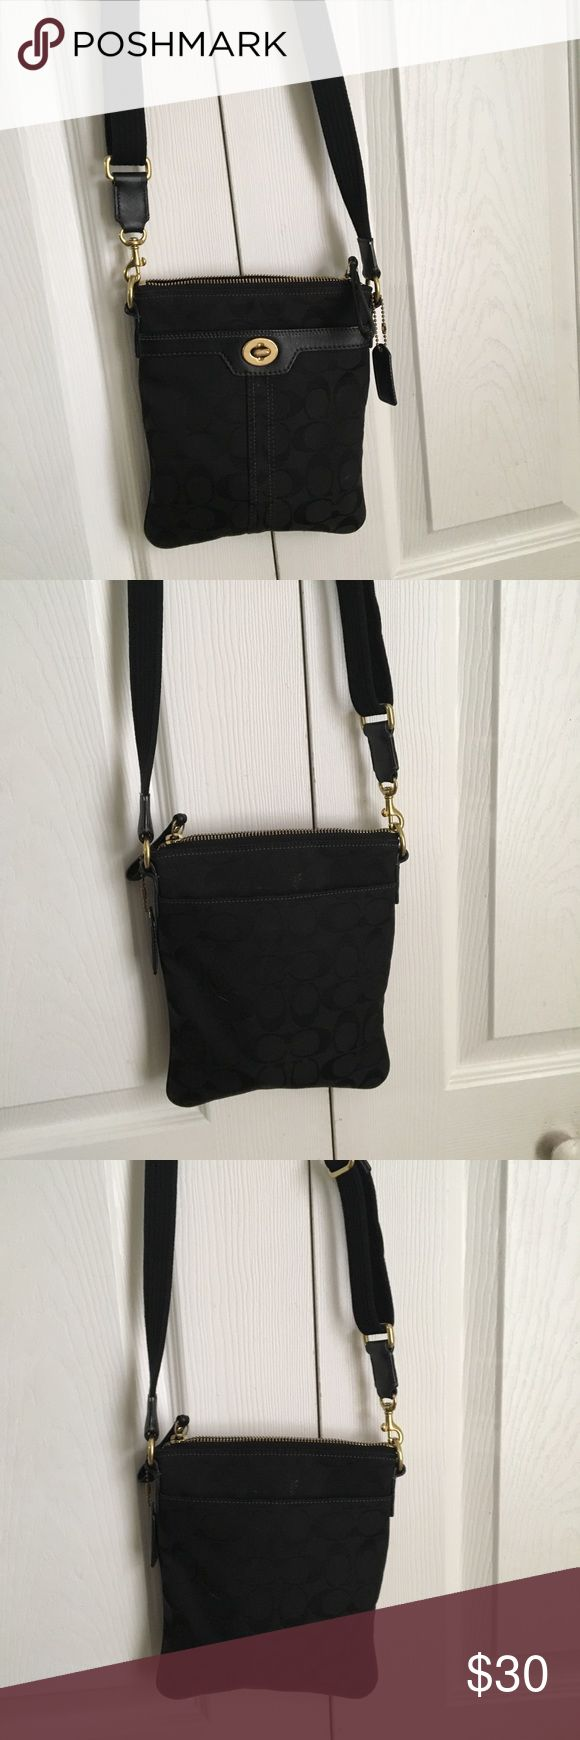 Coach Purse Black coach purse in great condition. Was marked as sold but there were shipping issues so I'm reselling it Coach Bags Crossbody Bags